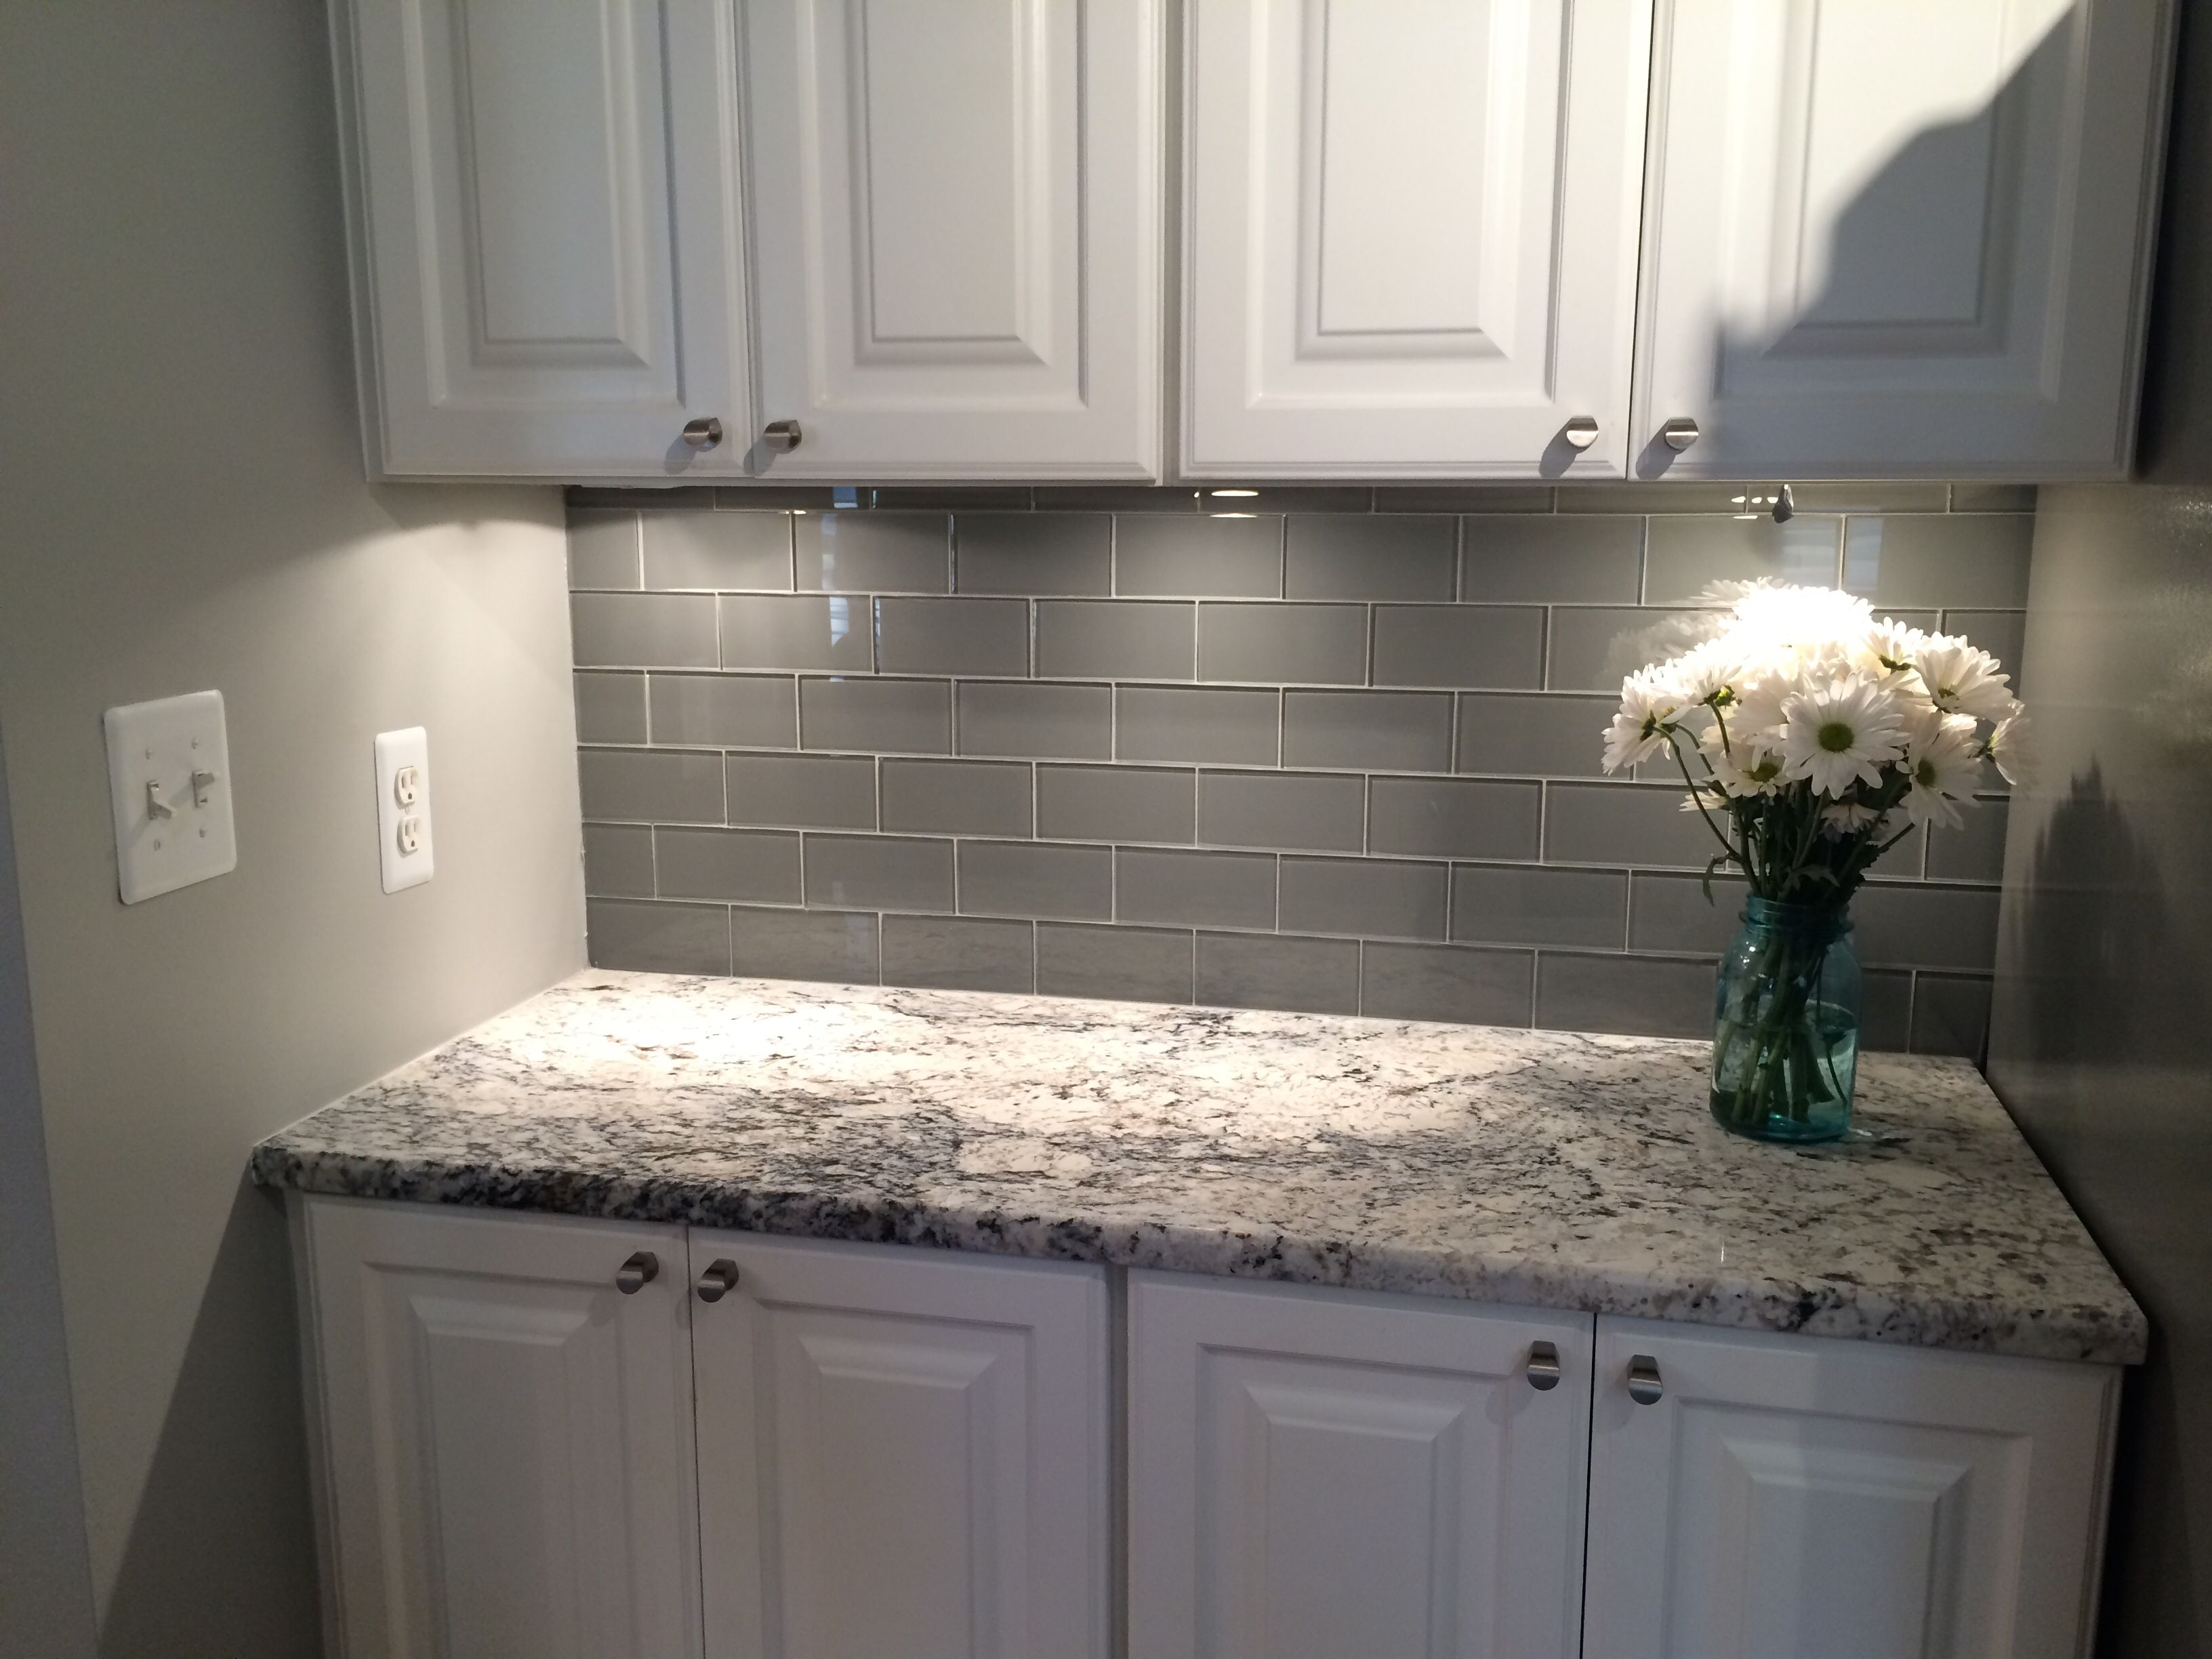 Modern Kitchen Design With Azul Platino Granite Countertop White